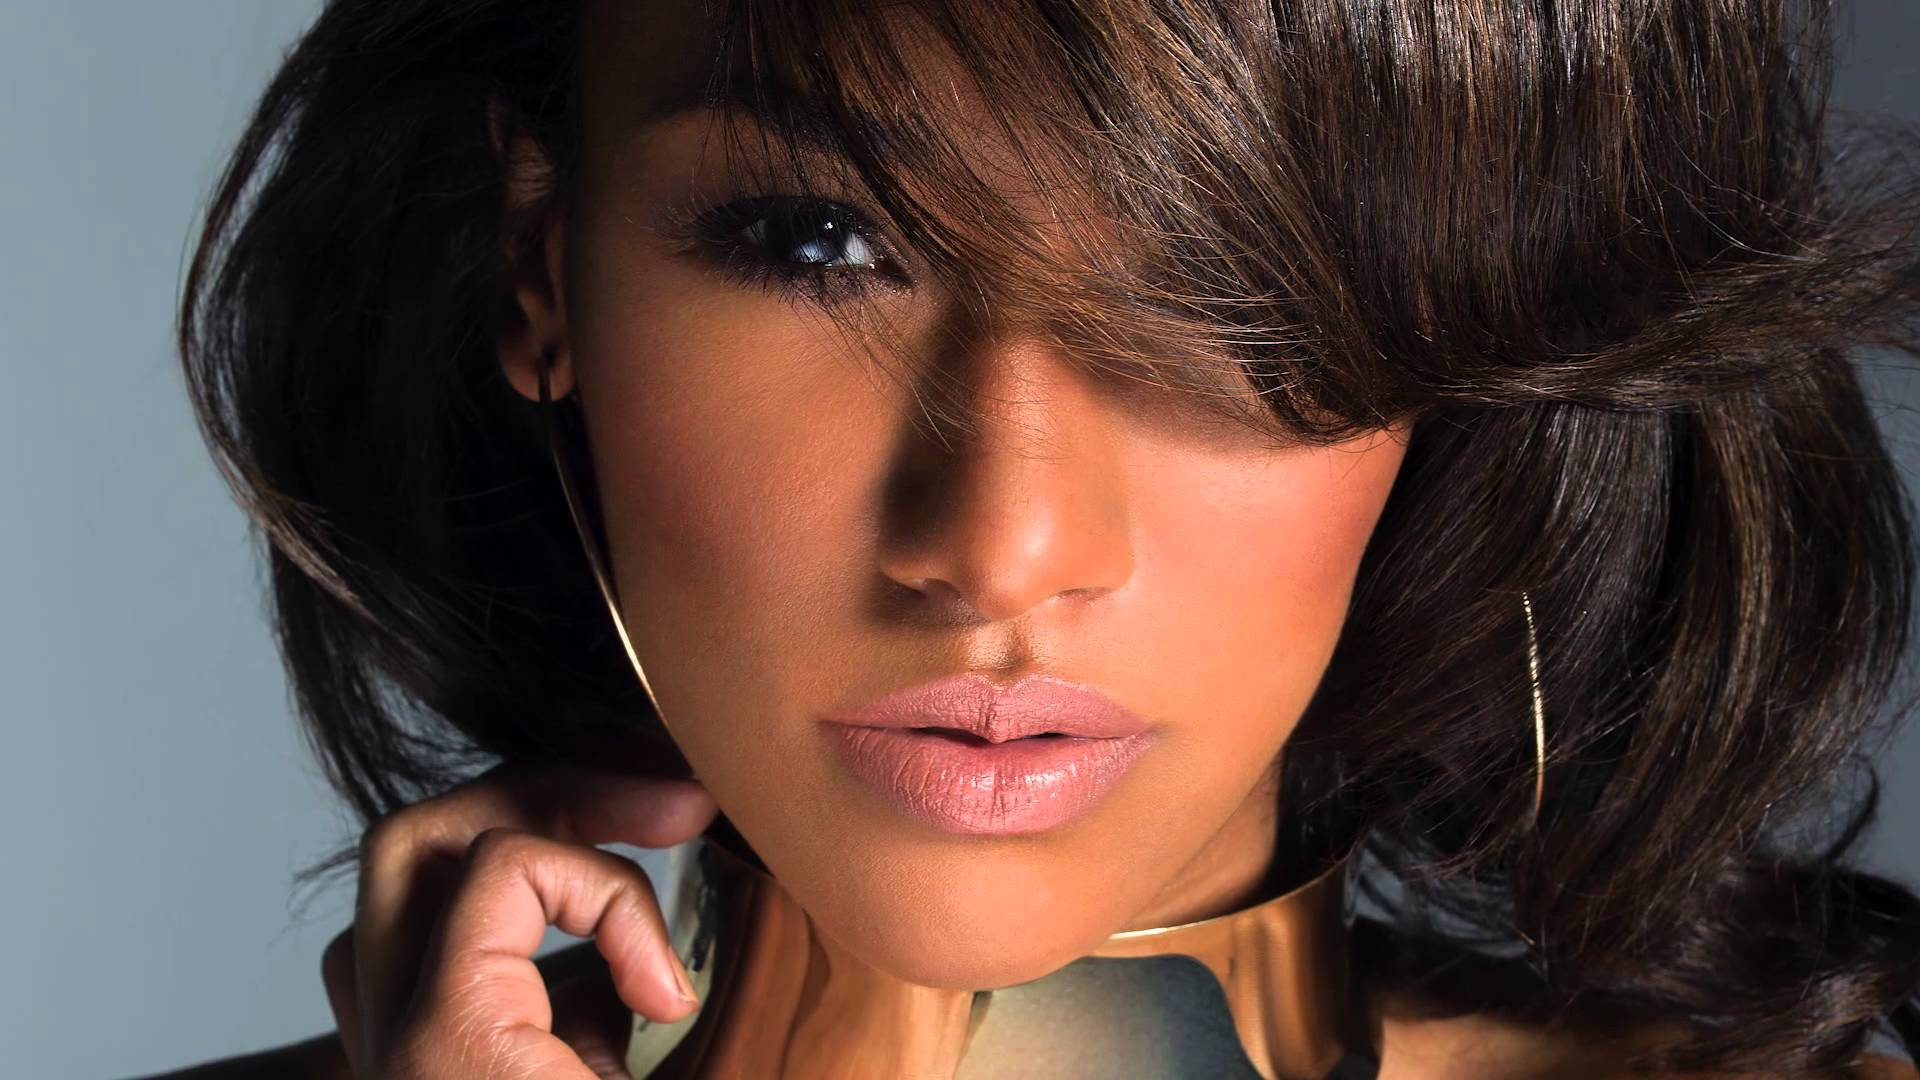 candice patton widescreen desktop wallpaper 1334